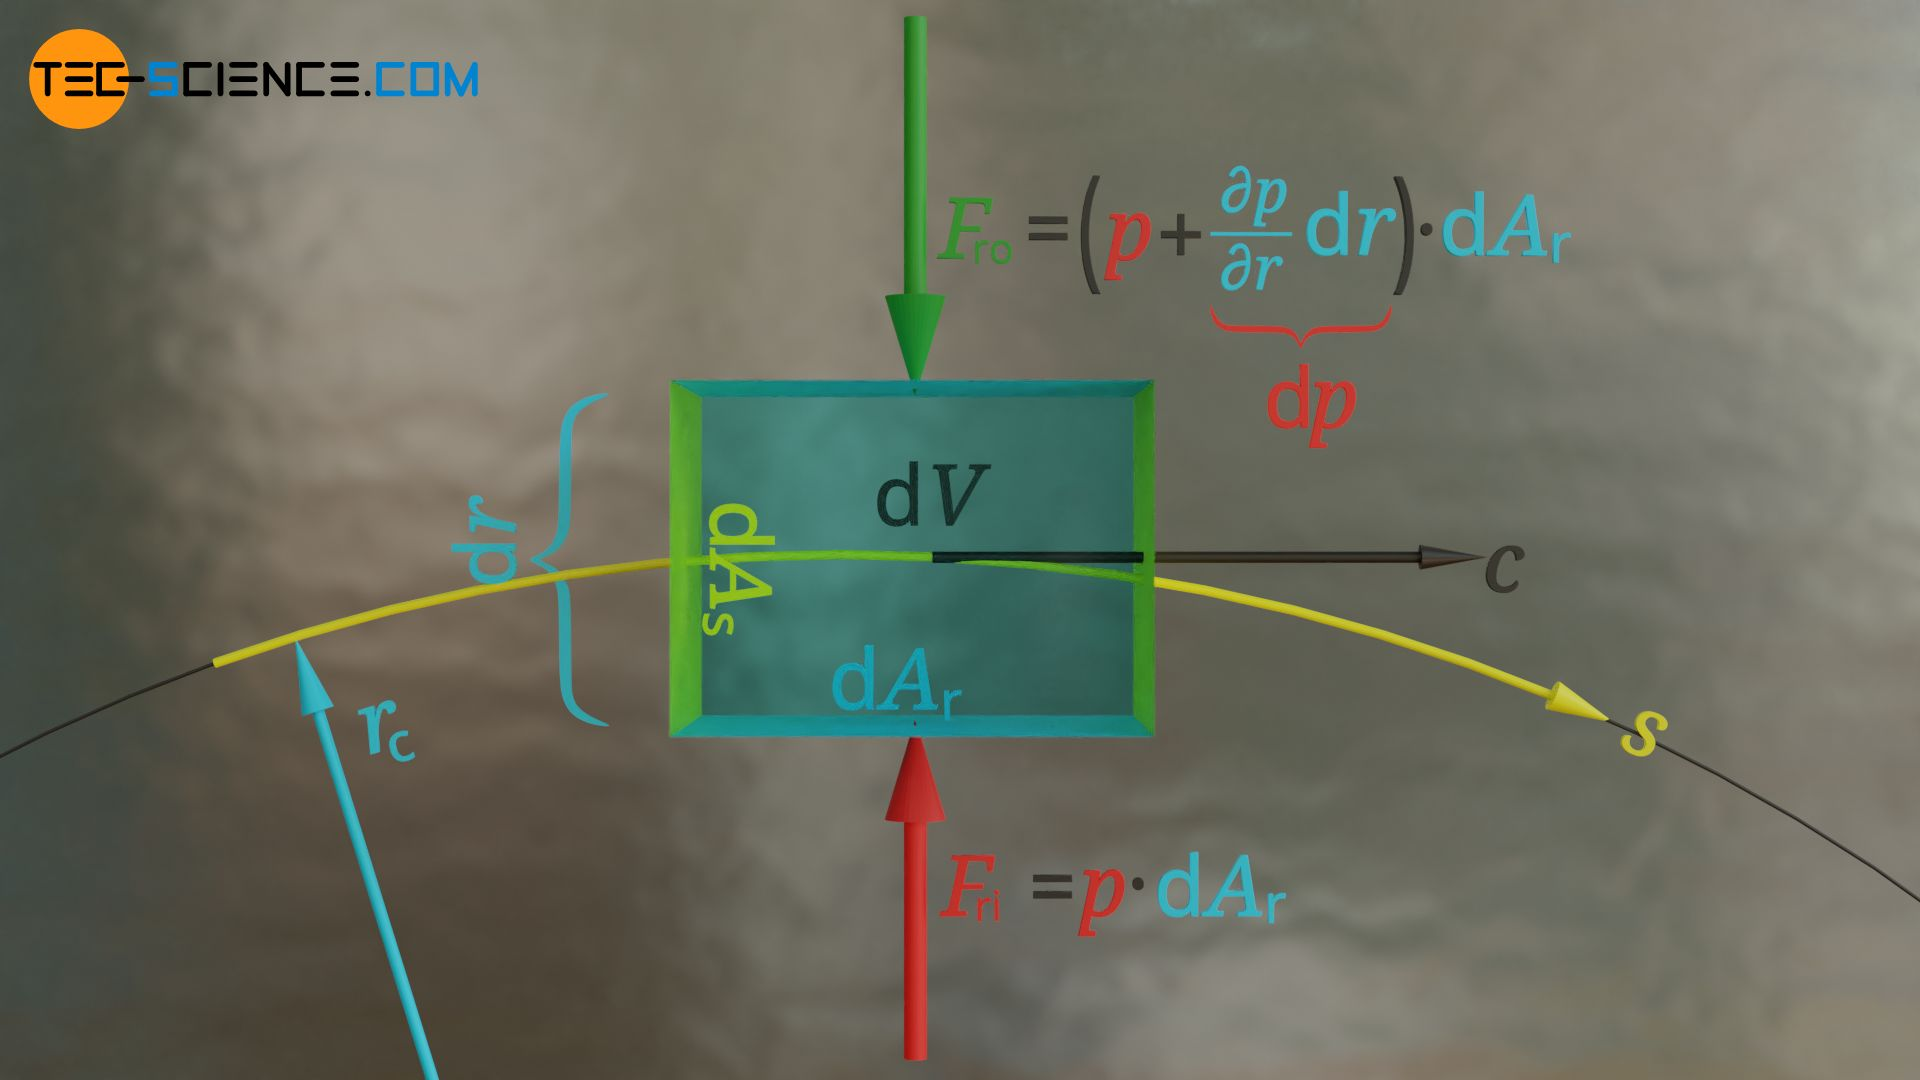 Derivation of the pressure gradient perpendicular to the streamline as a result of a centripetal force